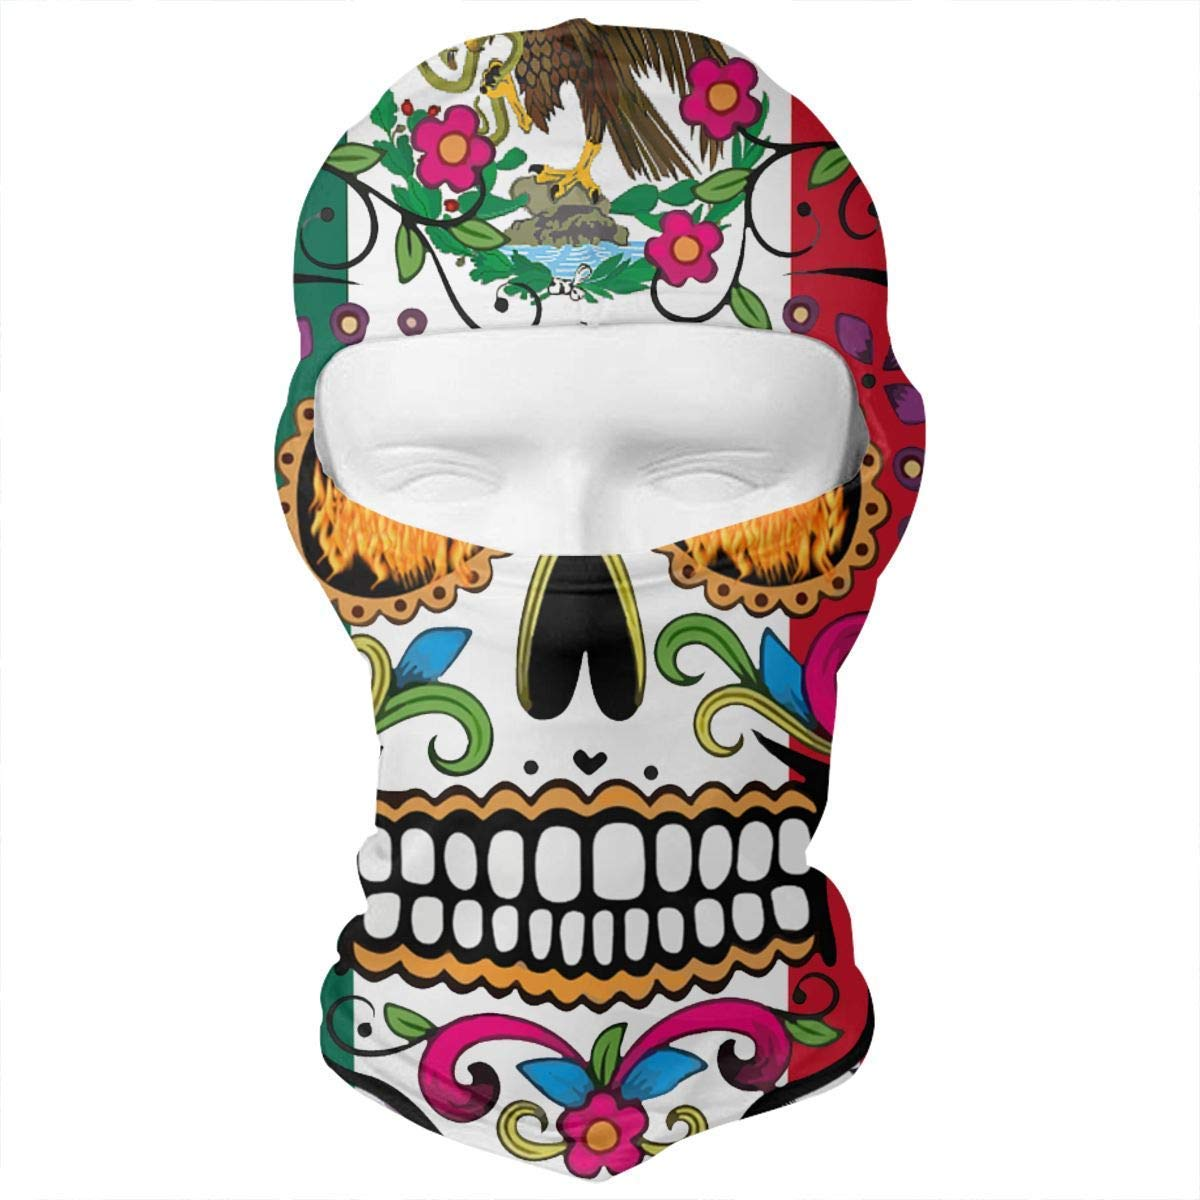 dfegyfr Mexico Flag Detailed Mexican Sugar Skull Vintage Balaclava UV Protection Windproof Ski Face Masks for Cycling Outdoor Sports Full Face Mask Breathable